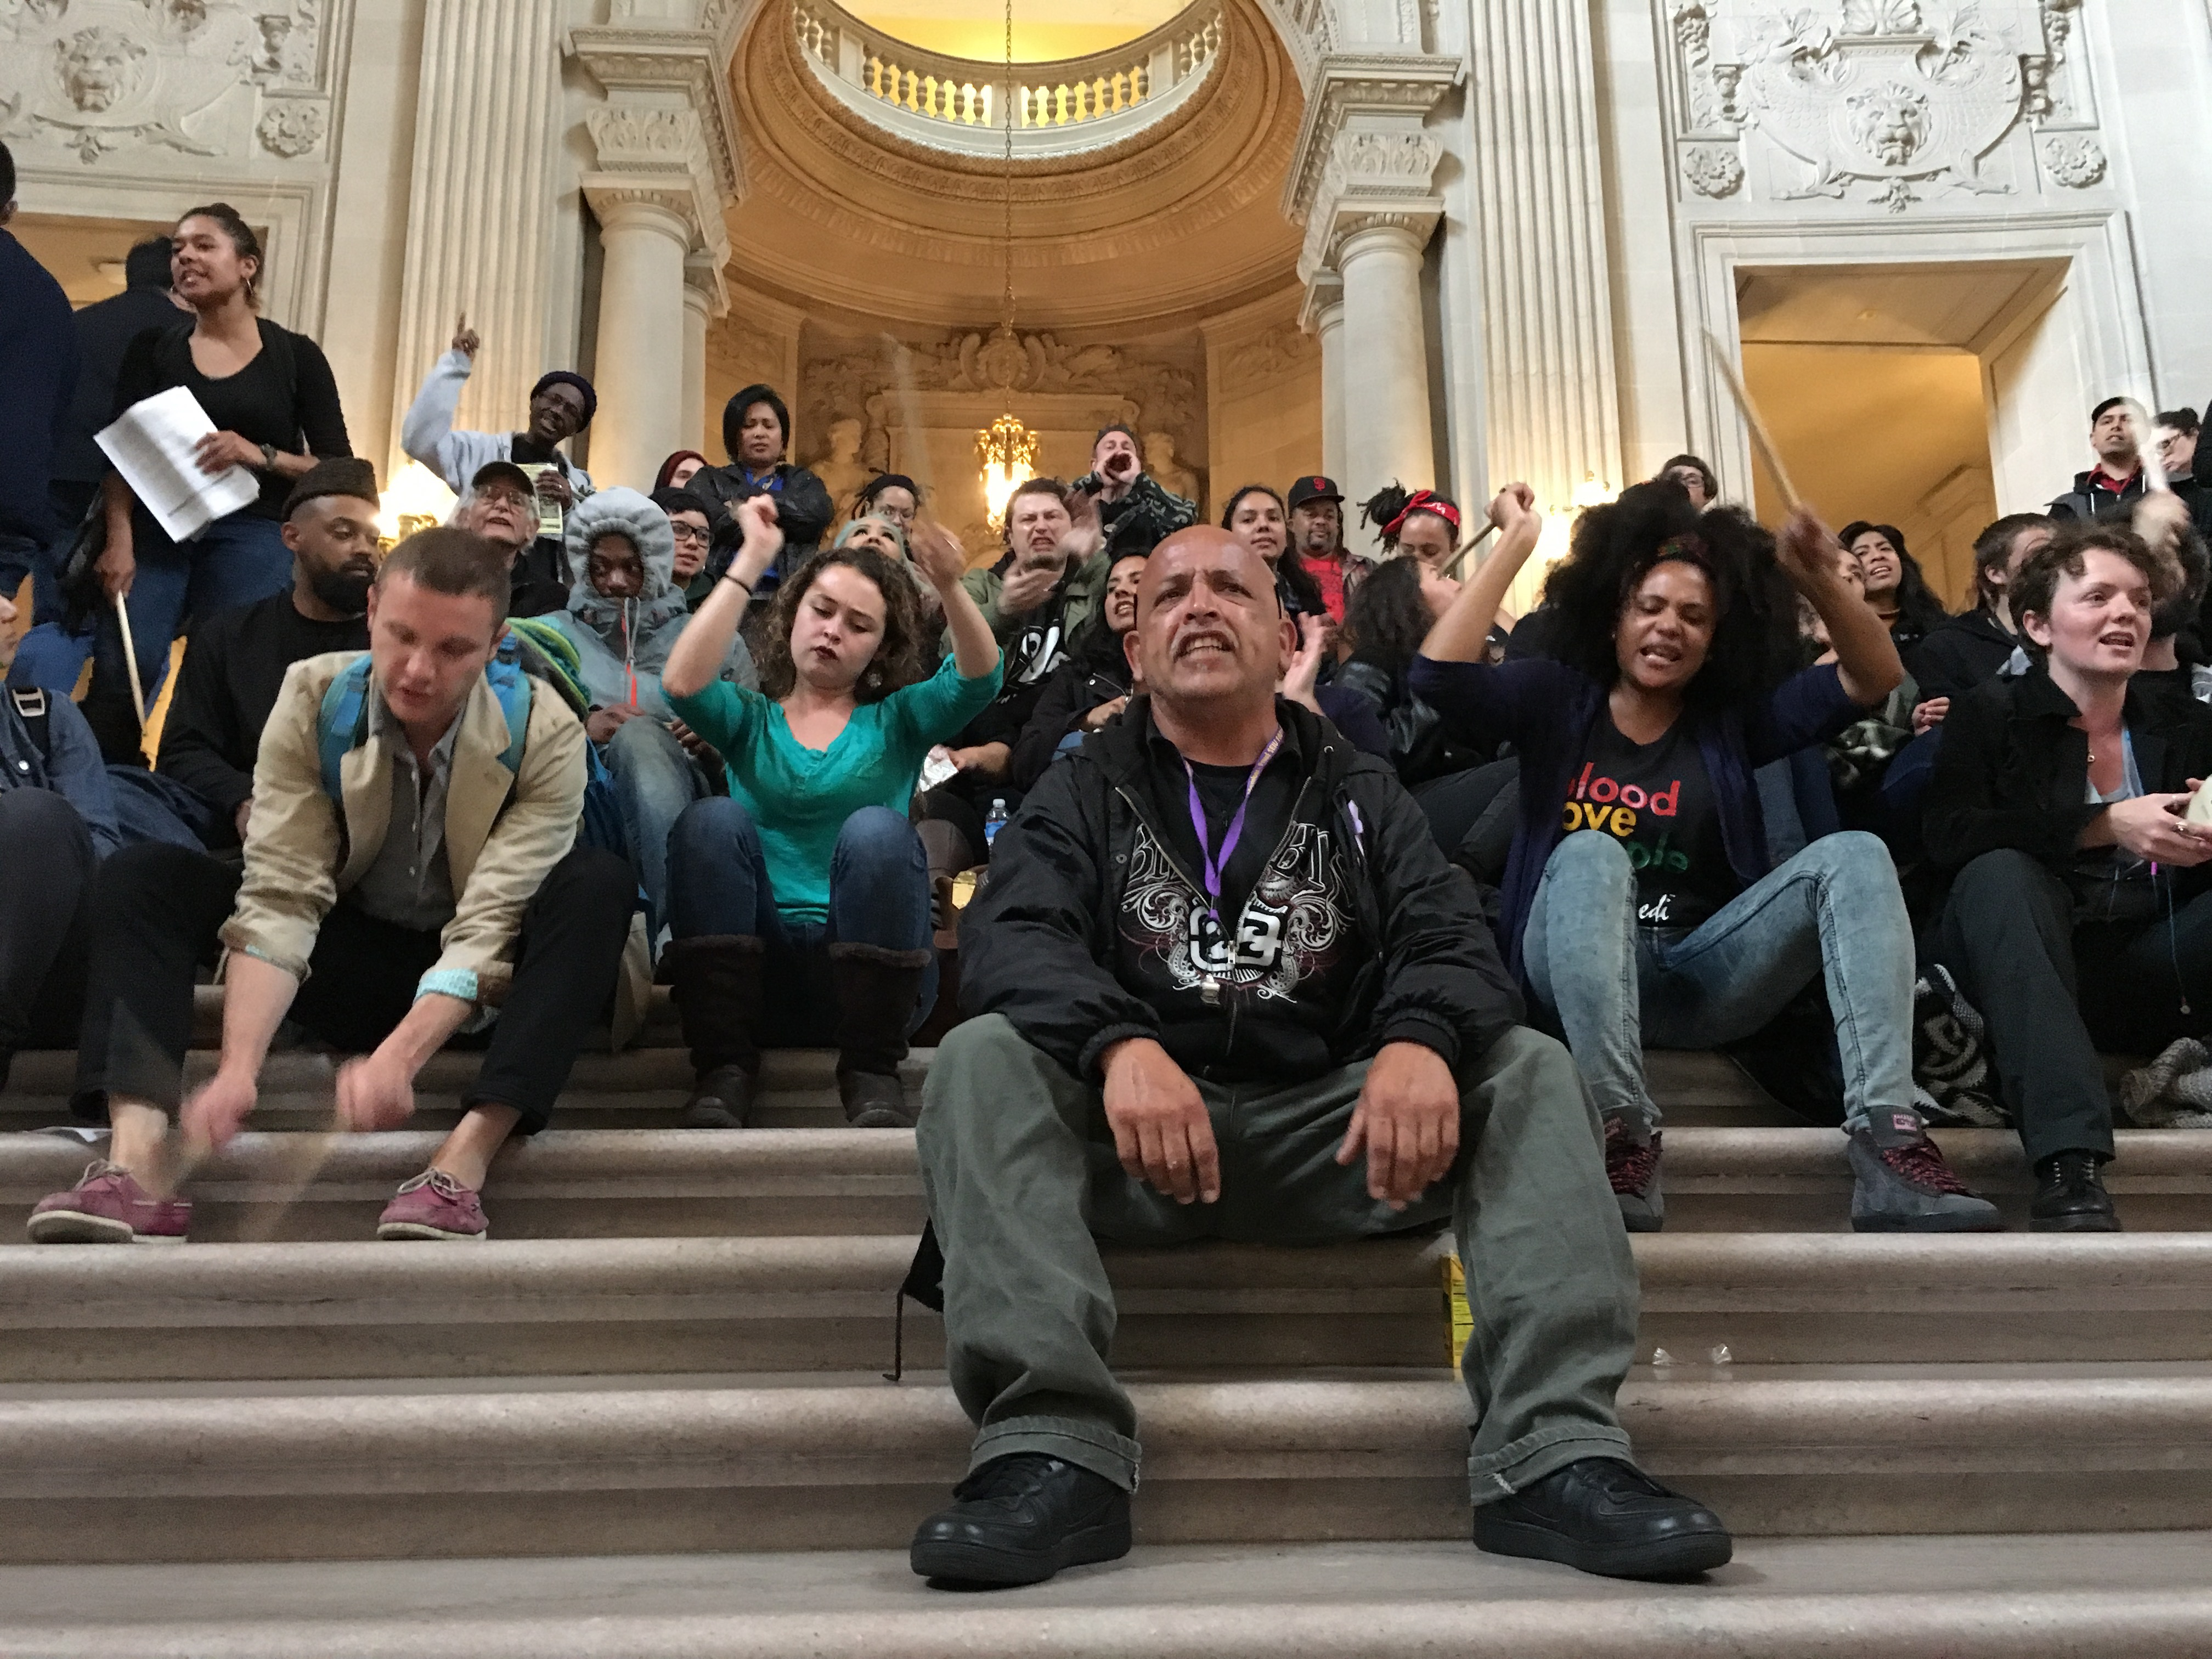 33 Arrests, Chaos as Supporters of Hunger Strikers and Sheriff's Deputies Clash at City Hall